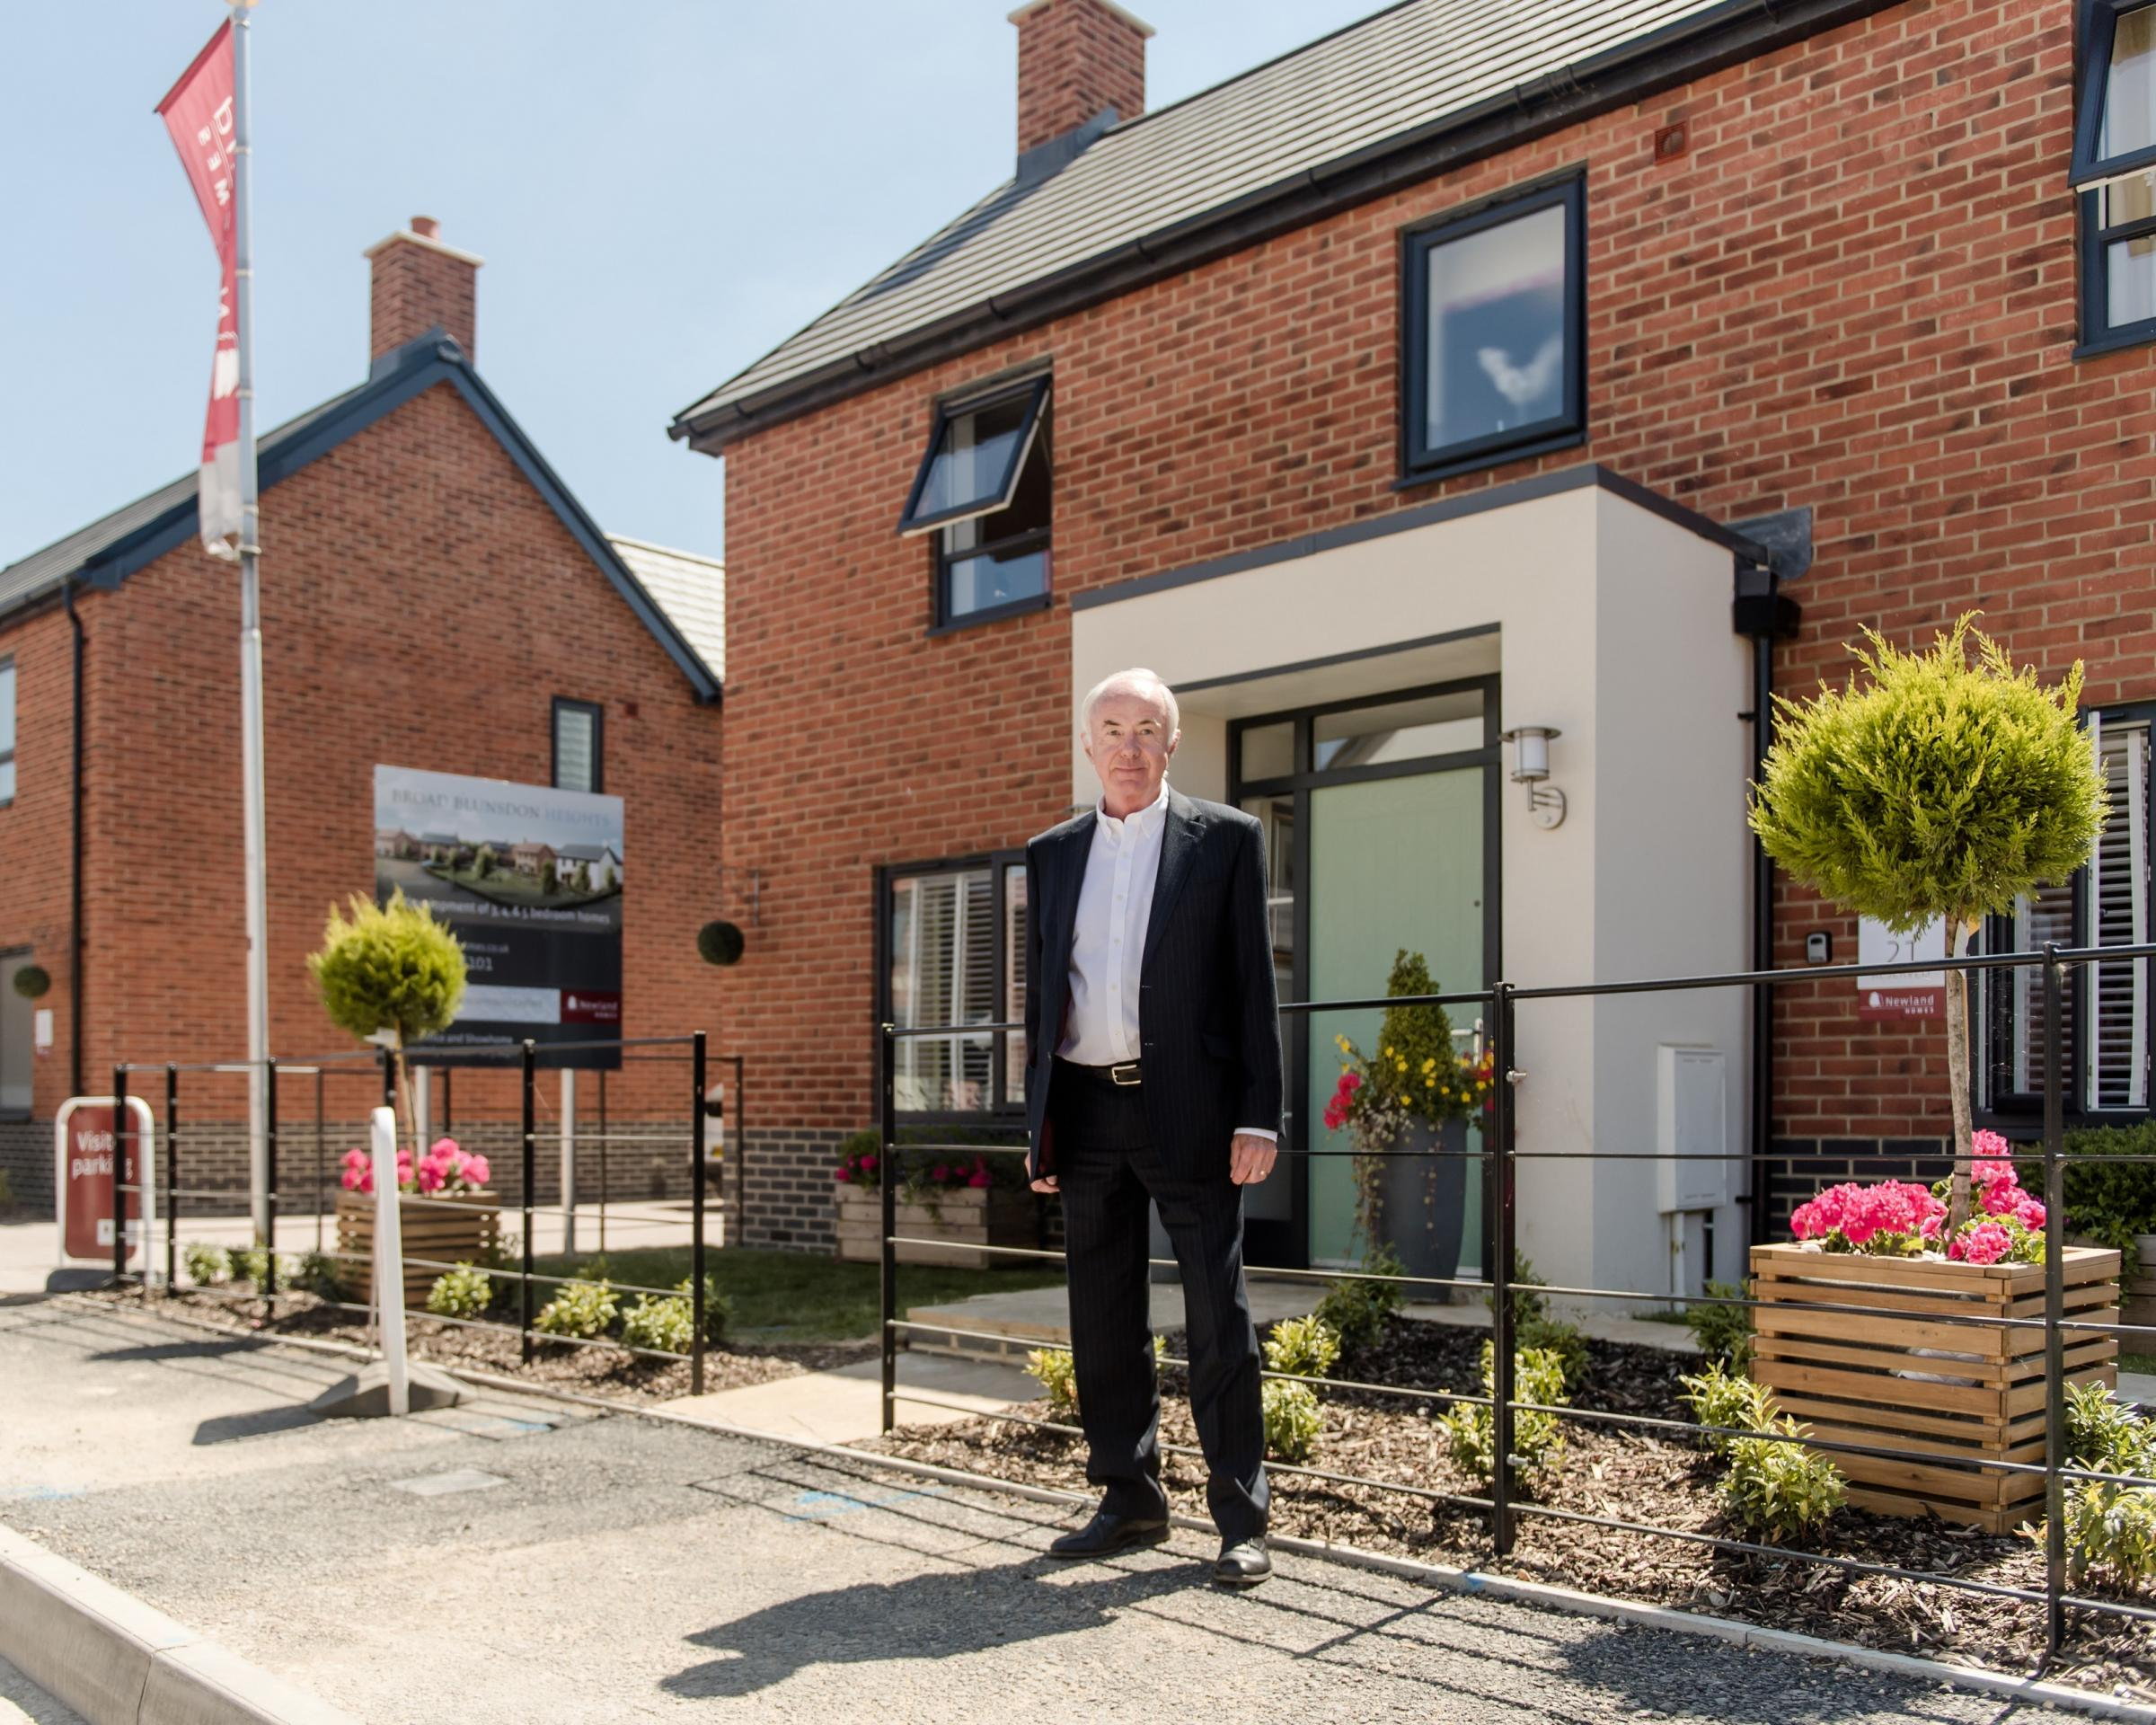 Local housebuilder recognised as one of Britain's 100 fastest growing companies